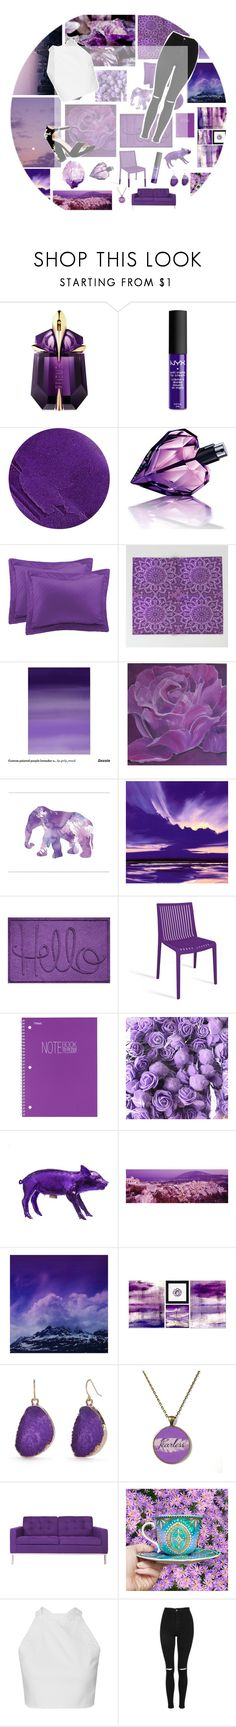 """""""Purple Daze ♡"""" by l-eliza ❤ liked on Polyvore featuring Thierry Mugler, NYX, Lipstick Queen, Diesel, Home Decorators Collection, Mead, Areaware, Leah Flores, PTM Images and New Directions"""